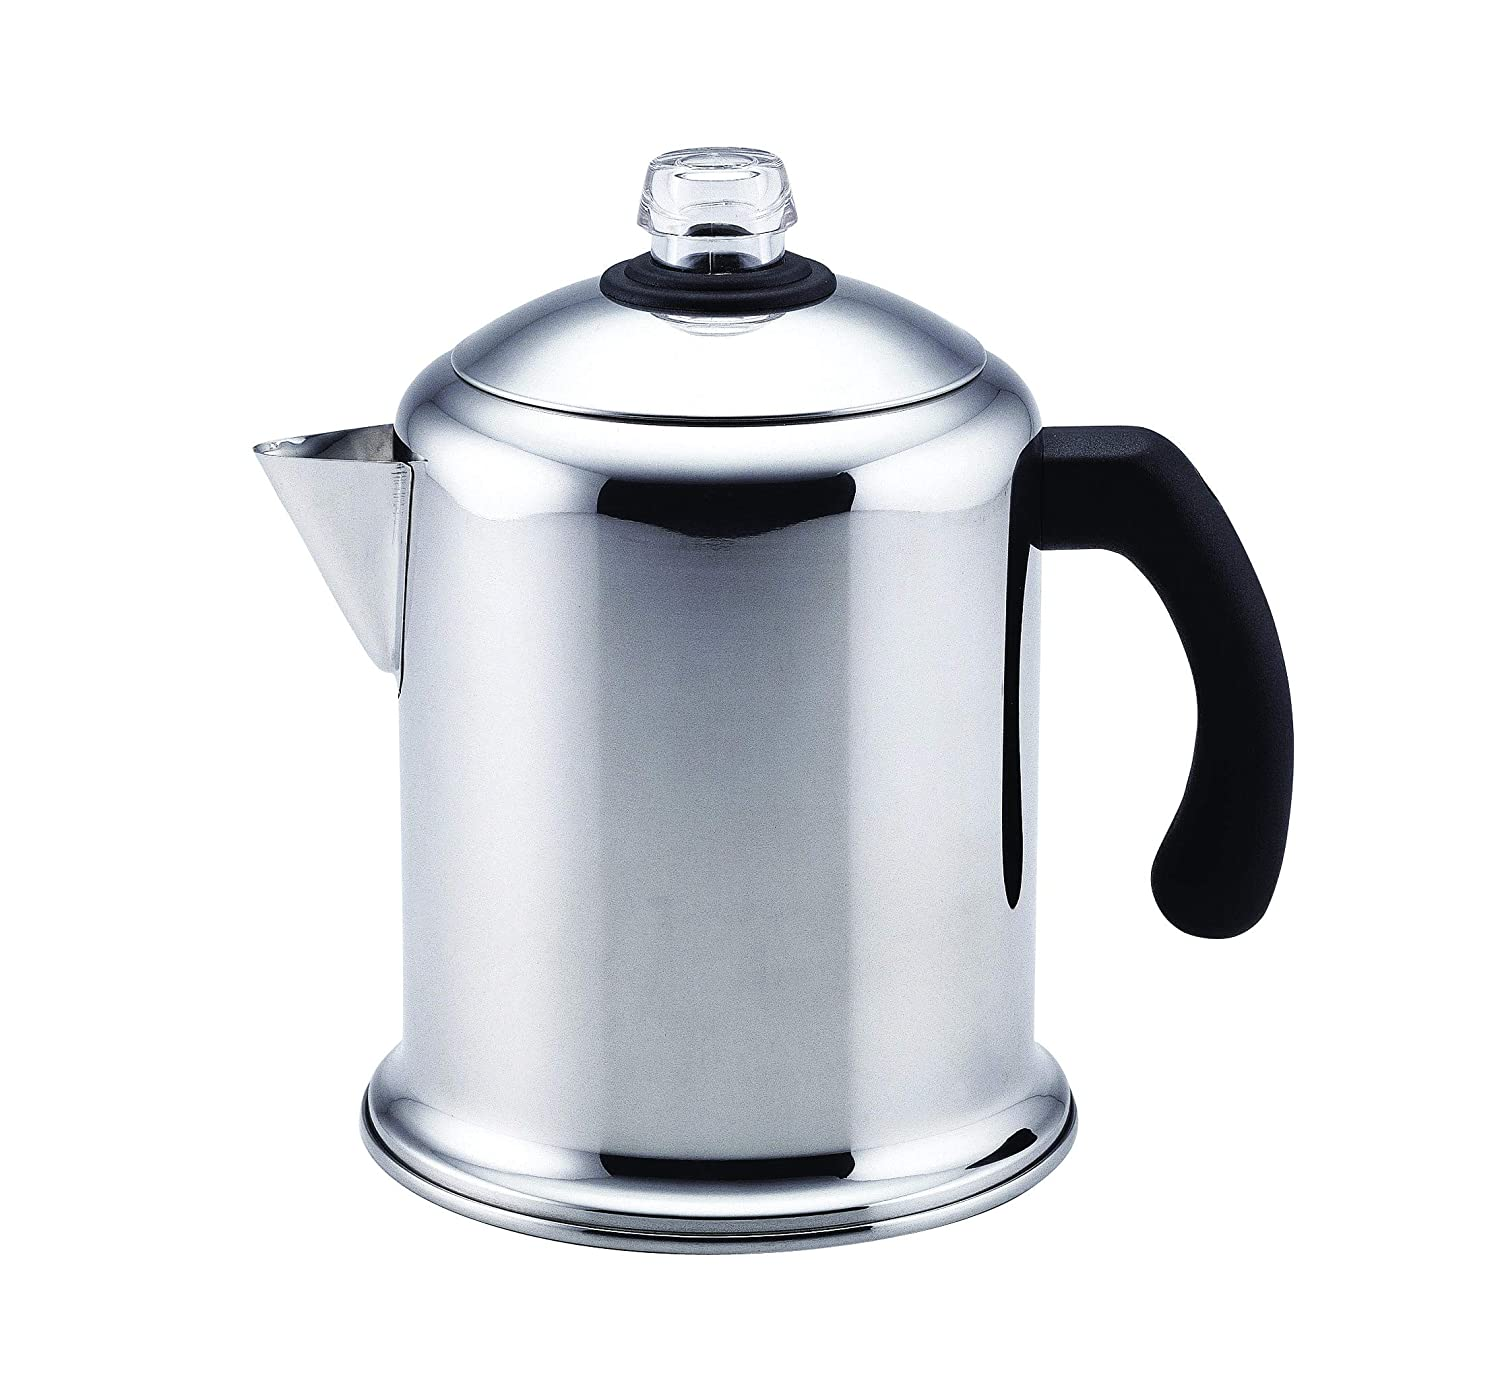 Farberware Classic Stainless Steel 8-Cup Stovetop Percolator